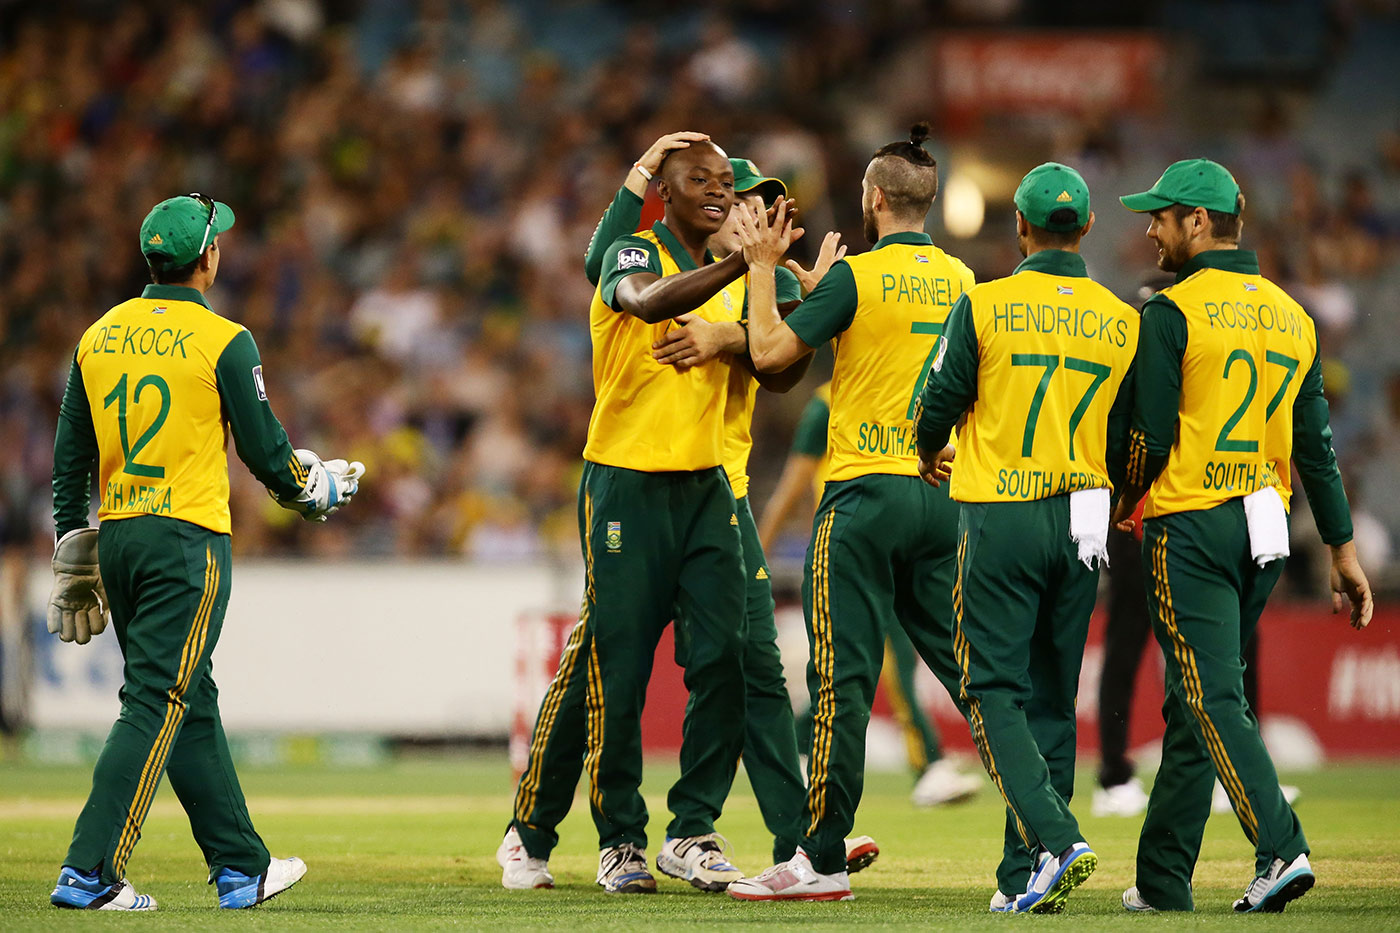 How it began: Rabada takes his first international wicket, that of Glenn Maxwell, in a T20I in 2014